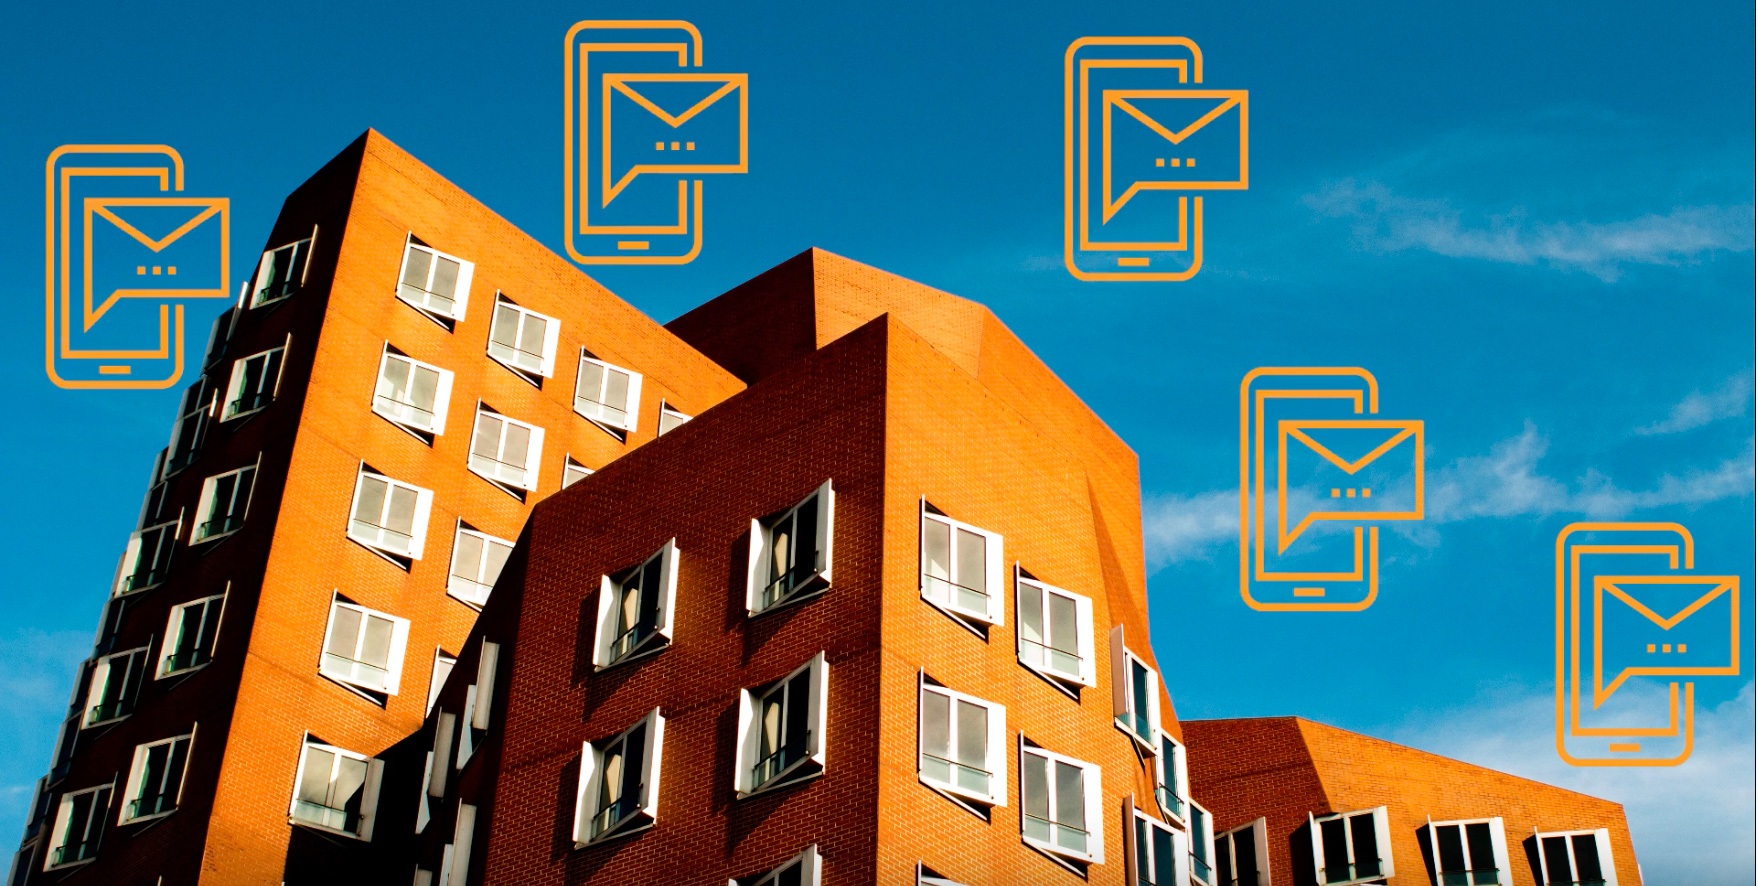 How to provide a more consumer-like experience for social housing appointments